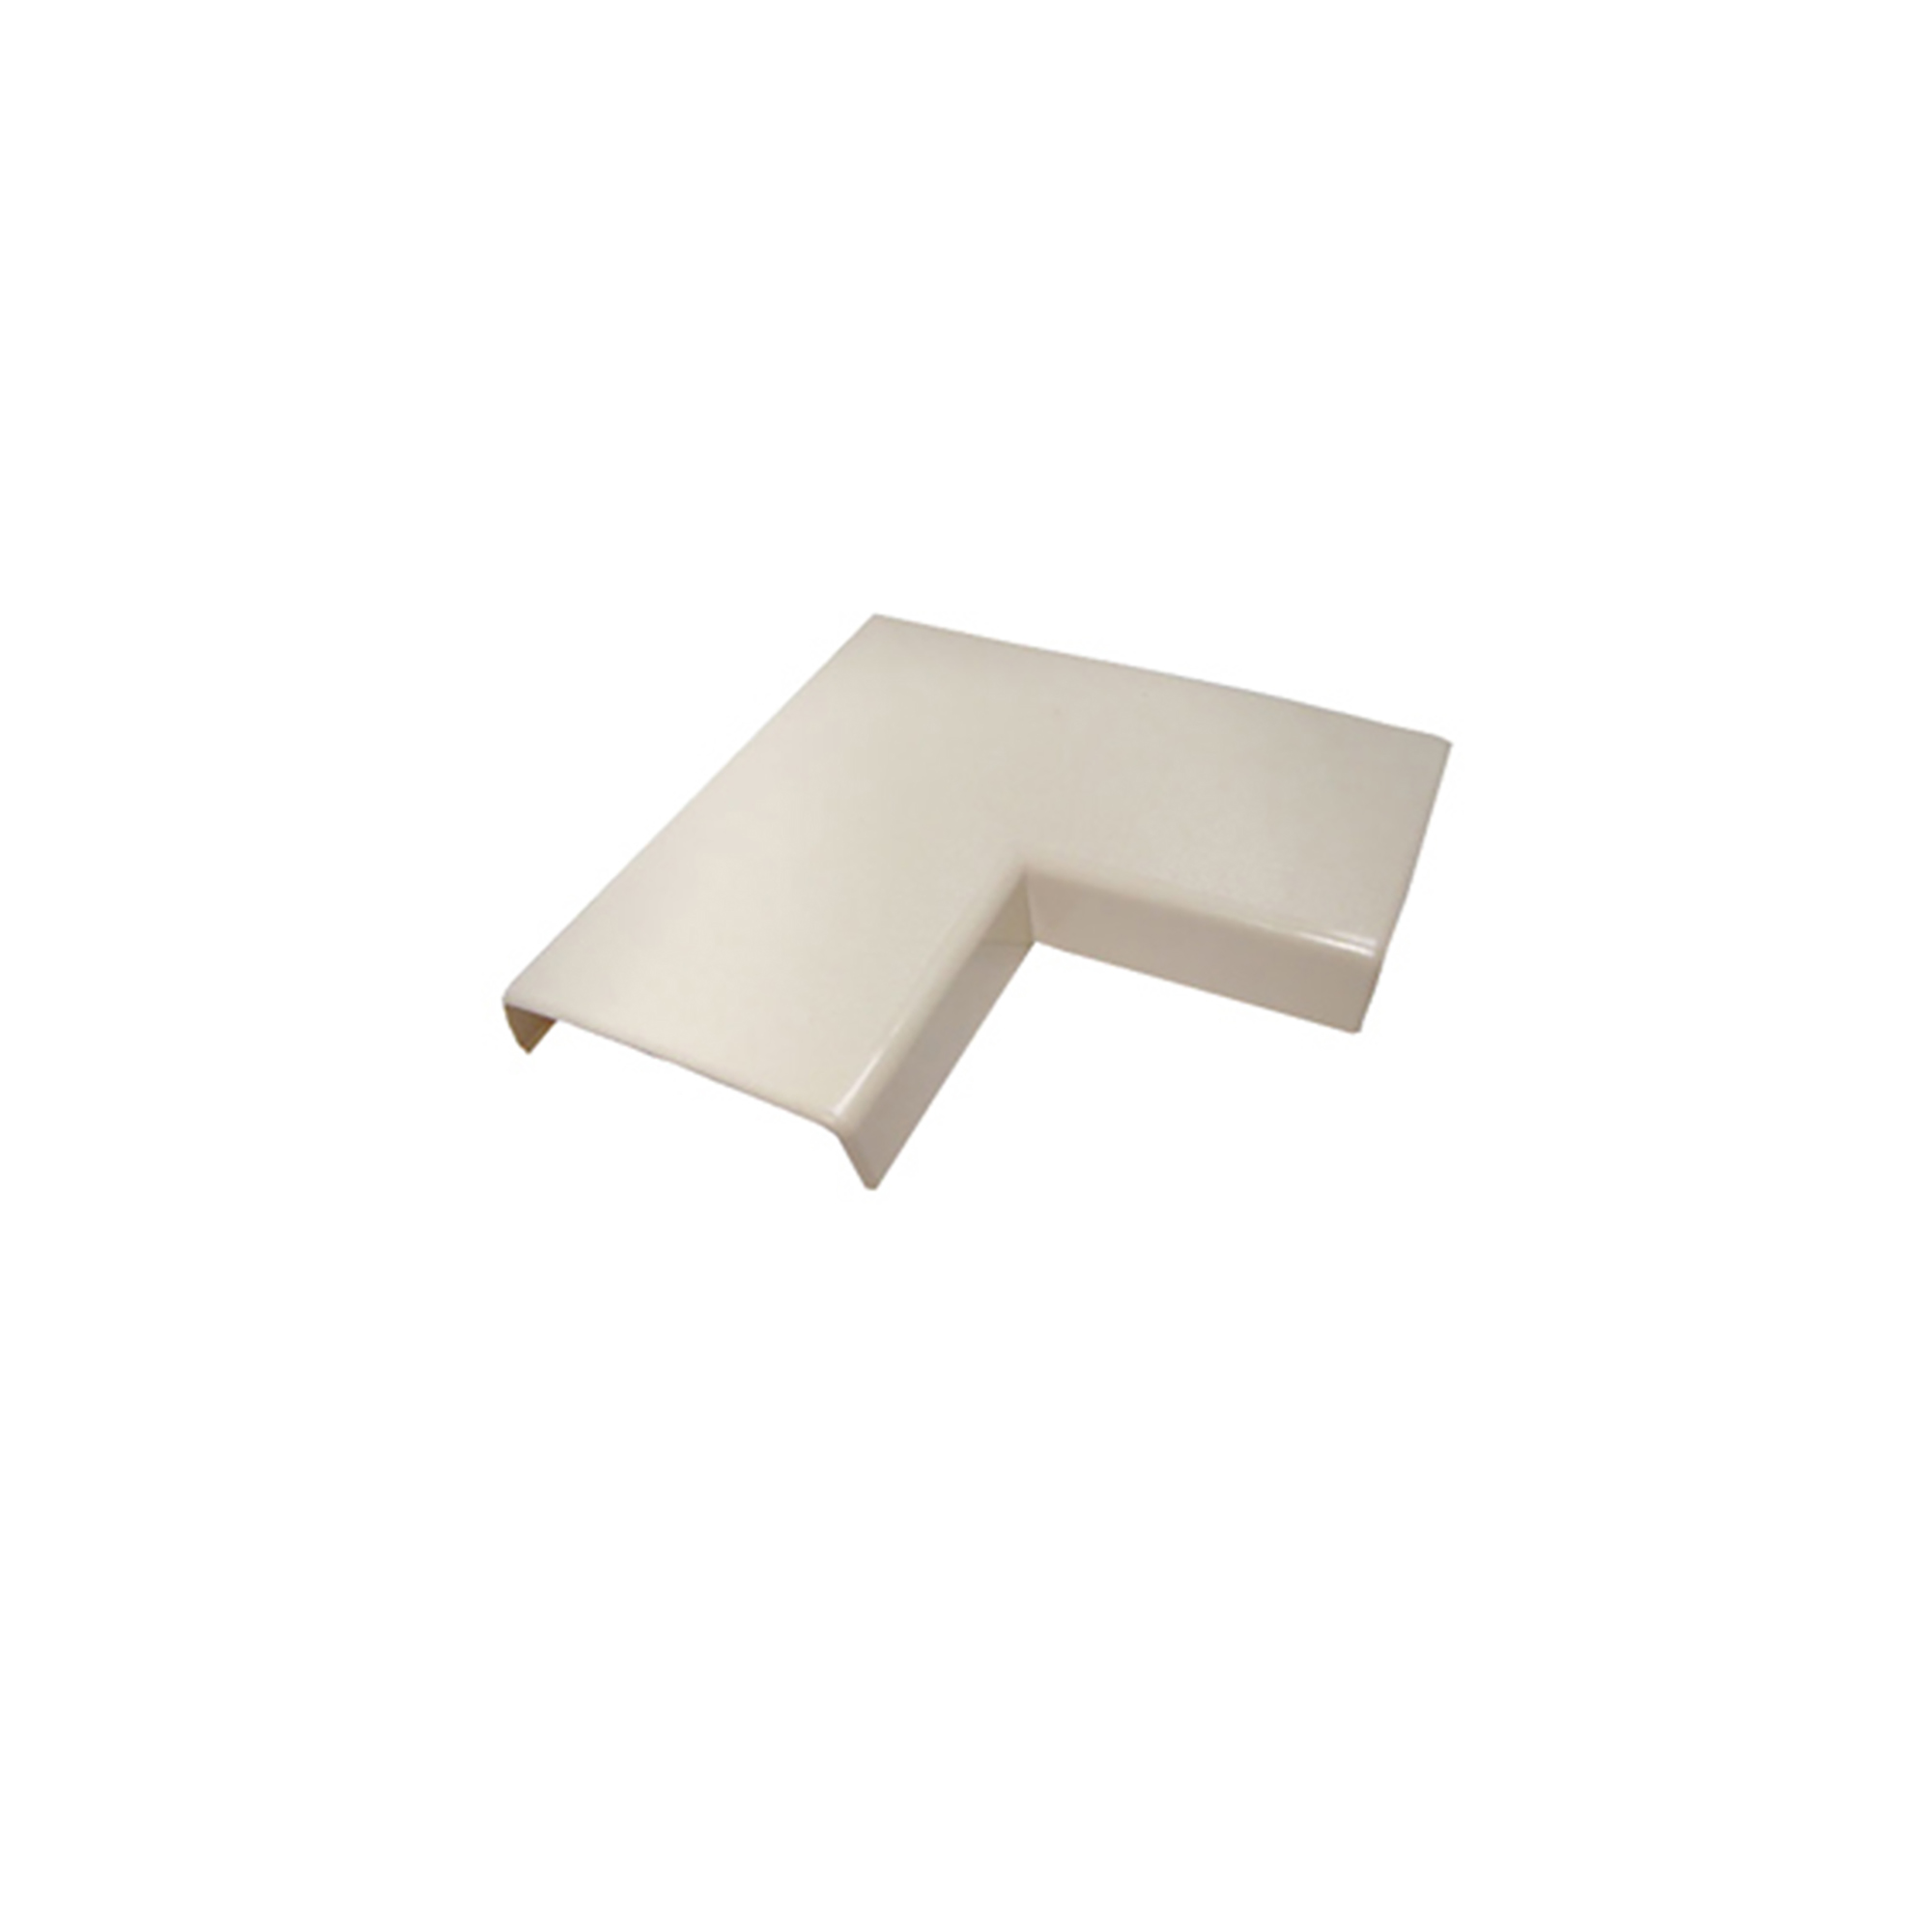 Wiremold Legrand 2311 90 Degree Flat Elbow 2300 Series Ivory